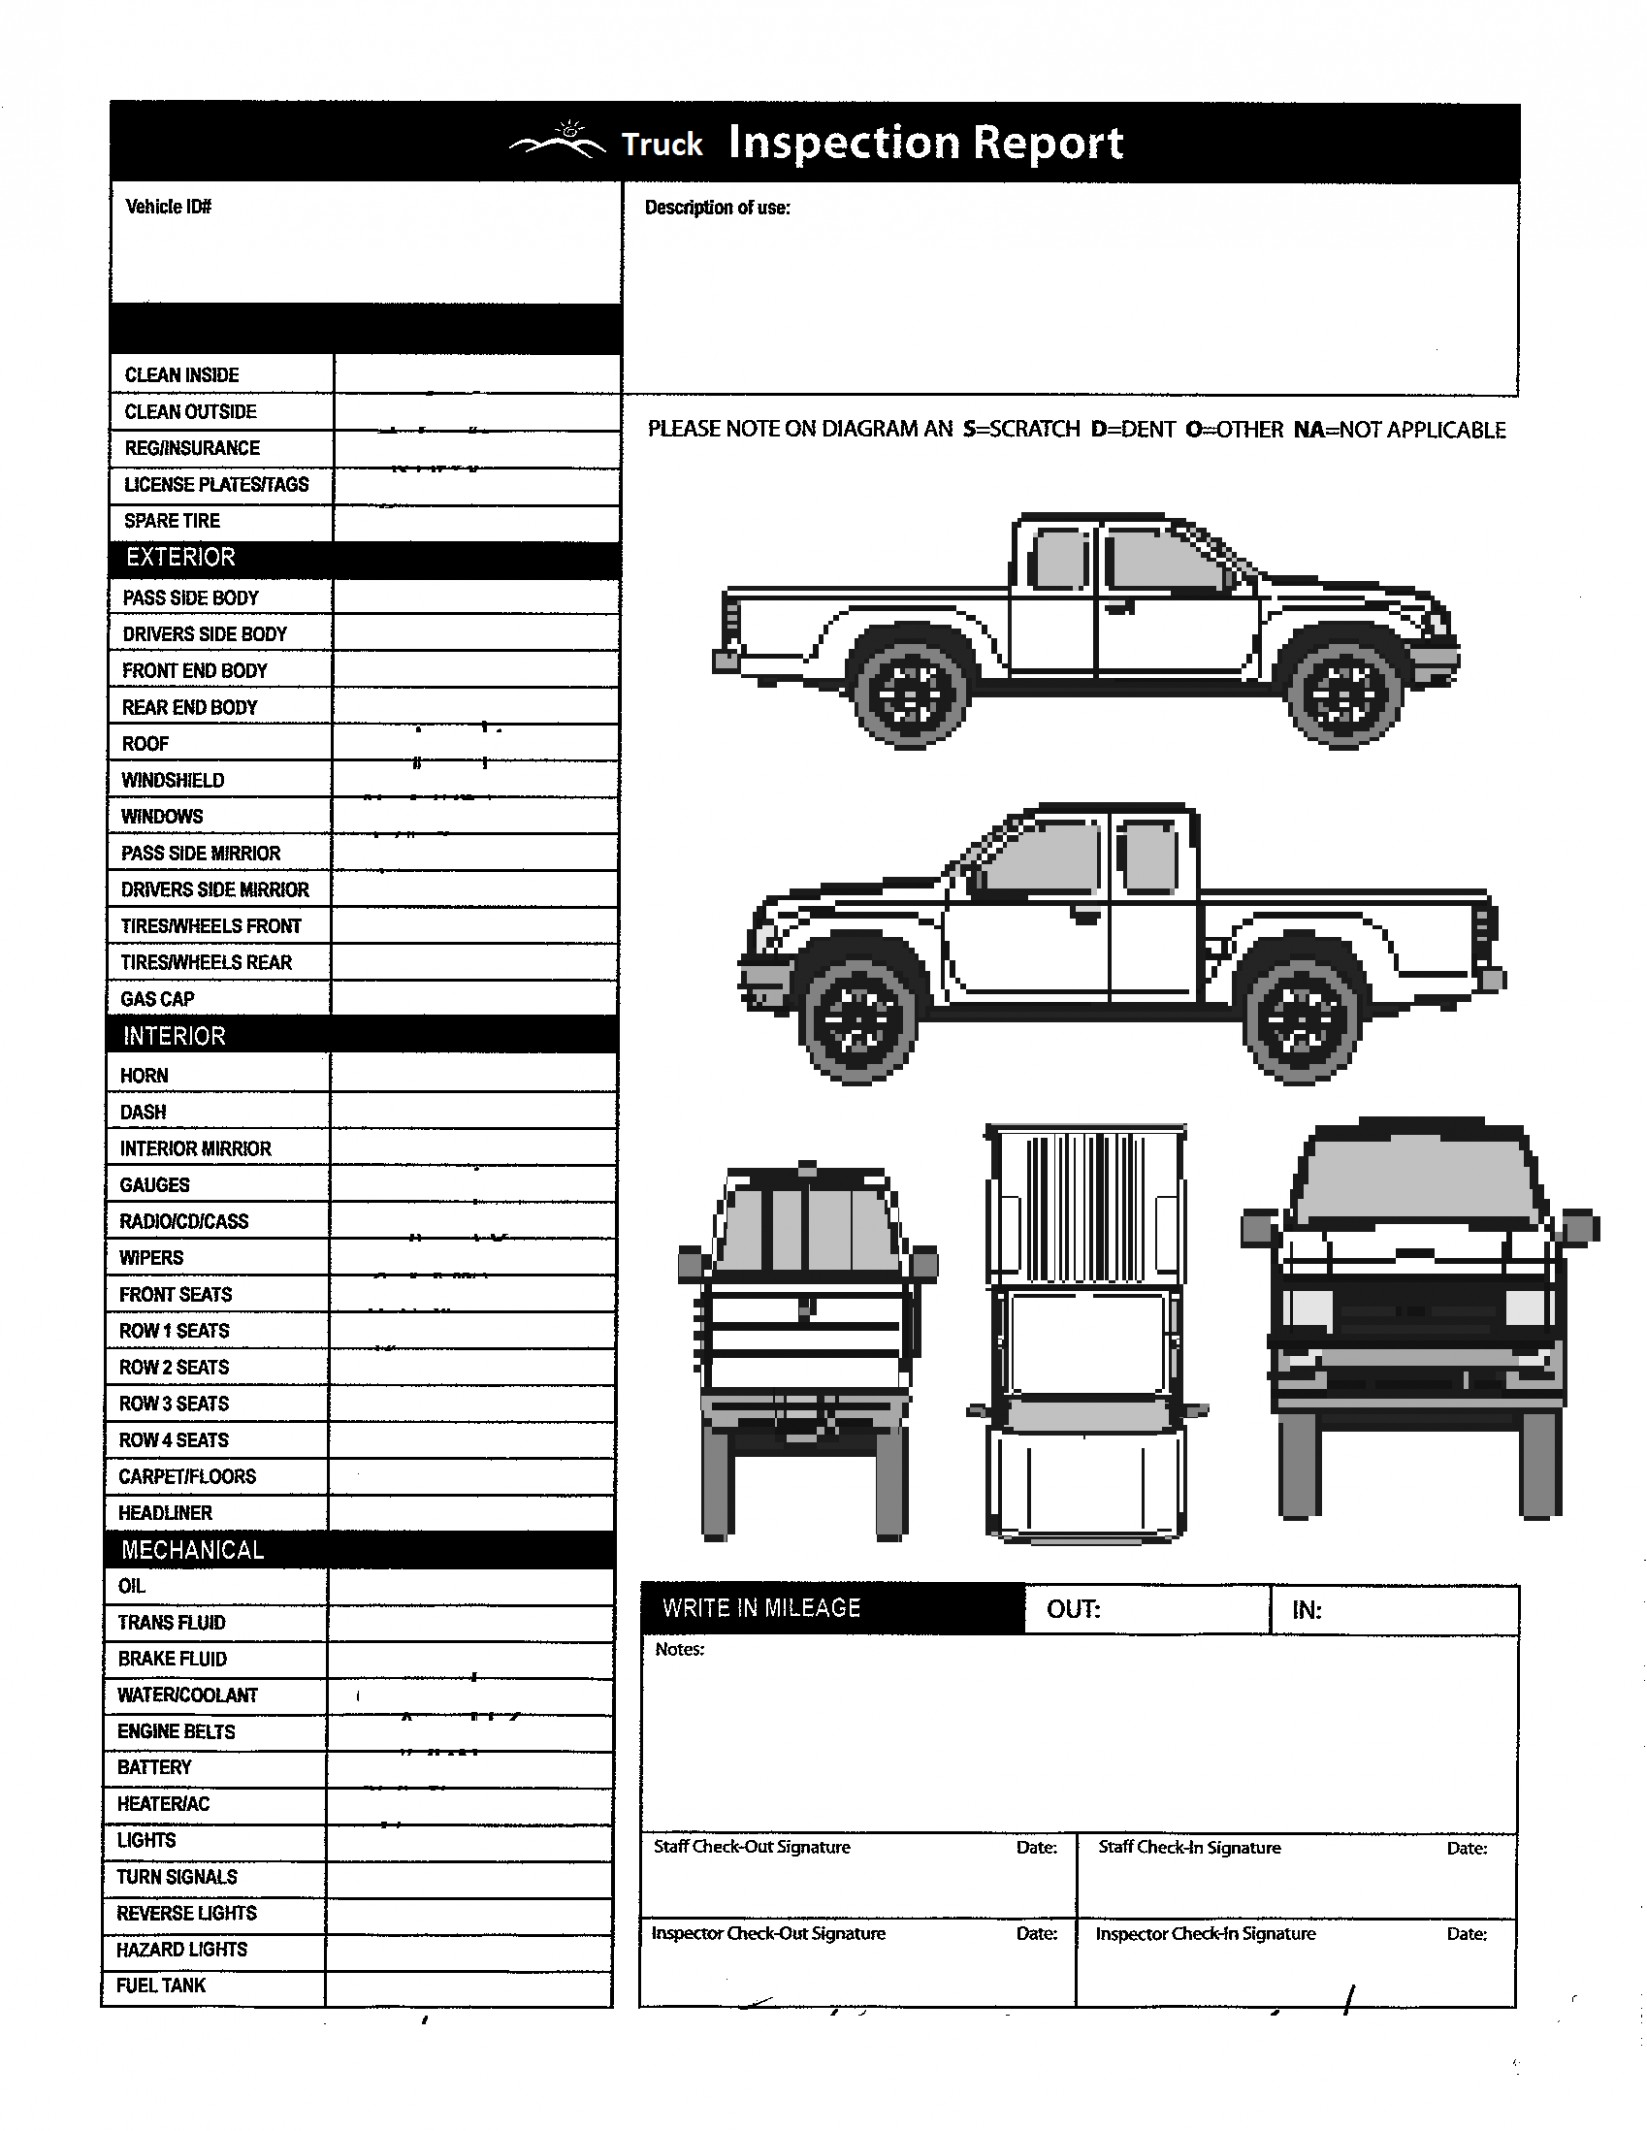 Truck Damage Diagram the 13 Secrets About Truck Inspection Checklist Ly A Of Truck Damage Diagram